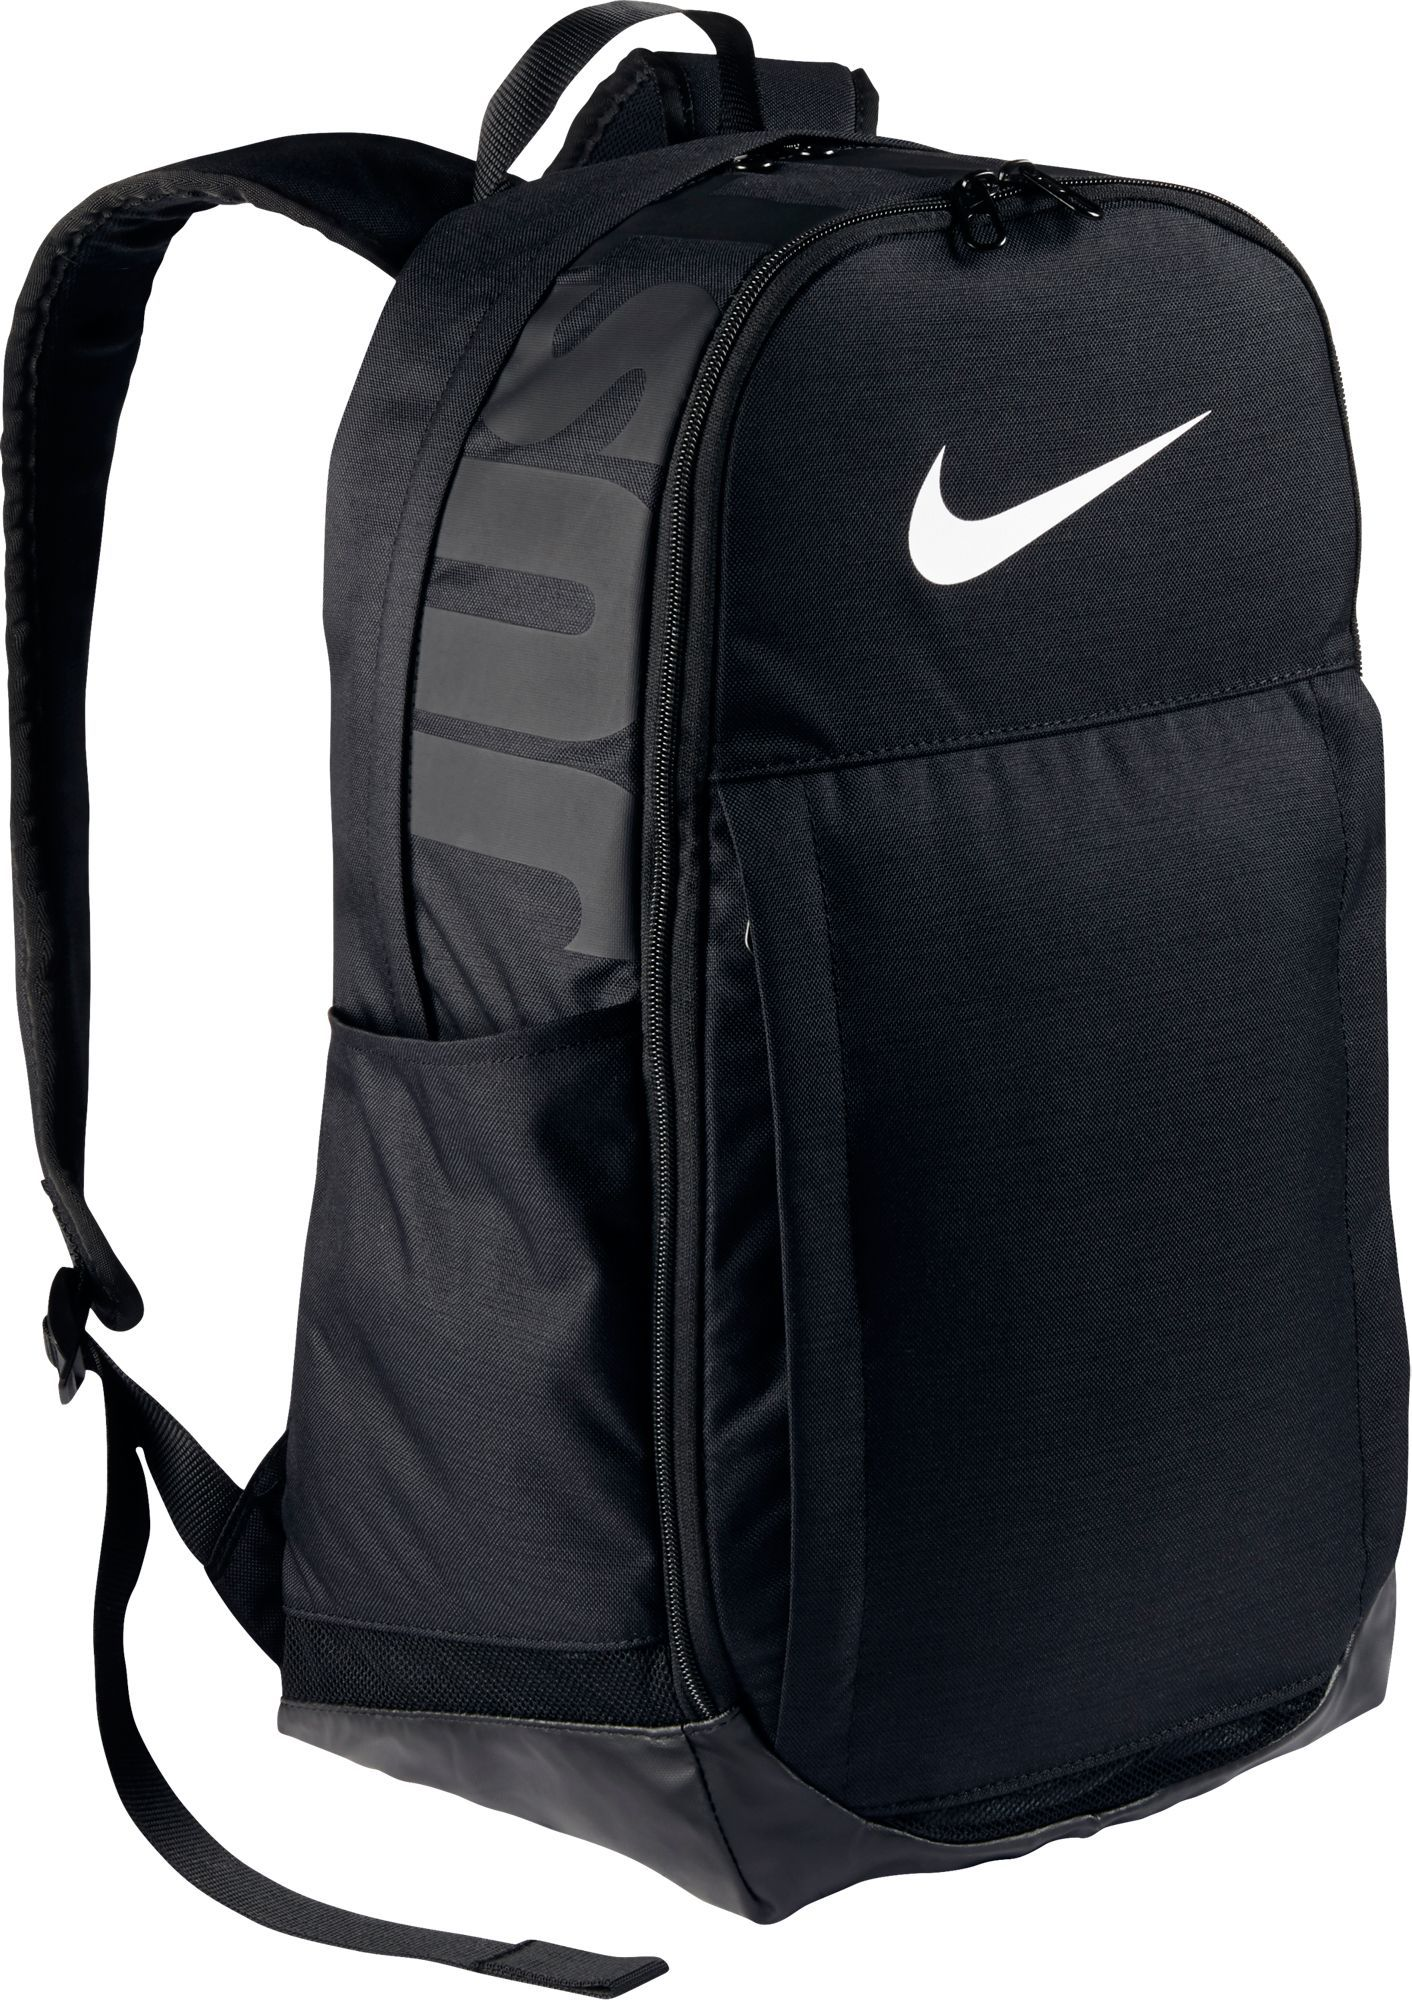 Nike Brasilia XL Training Backpack  b3ed3aa47eac0